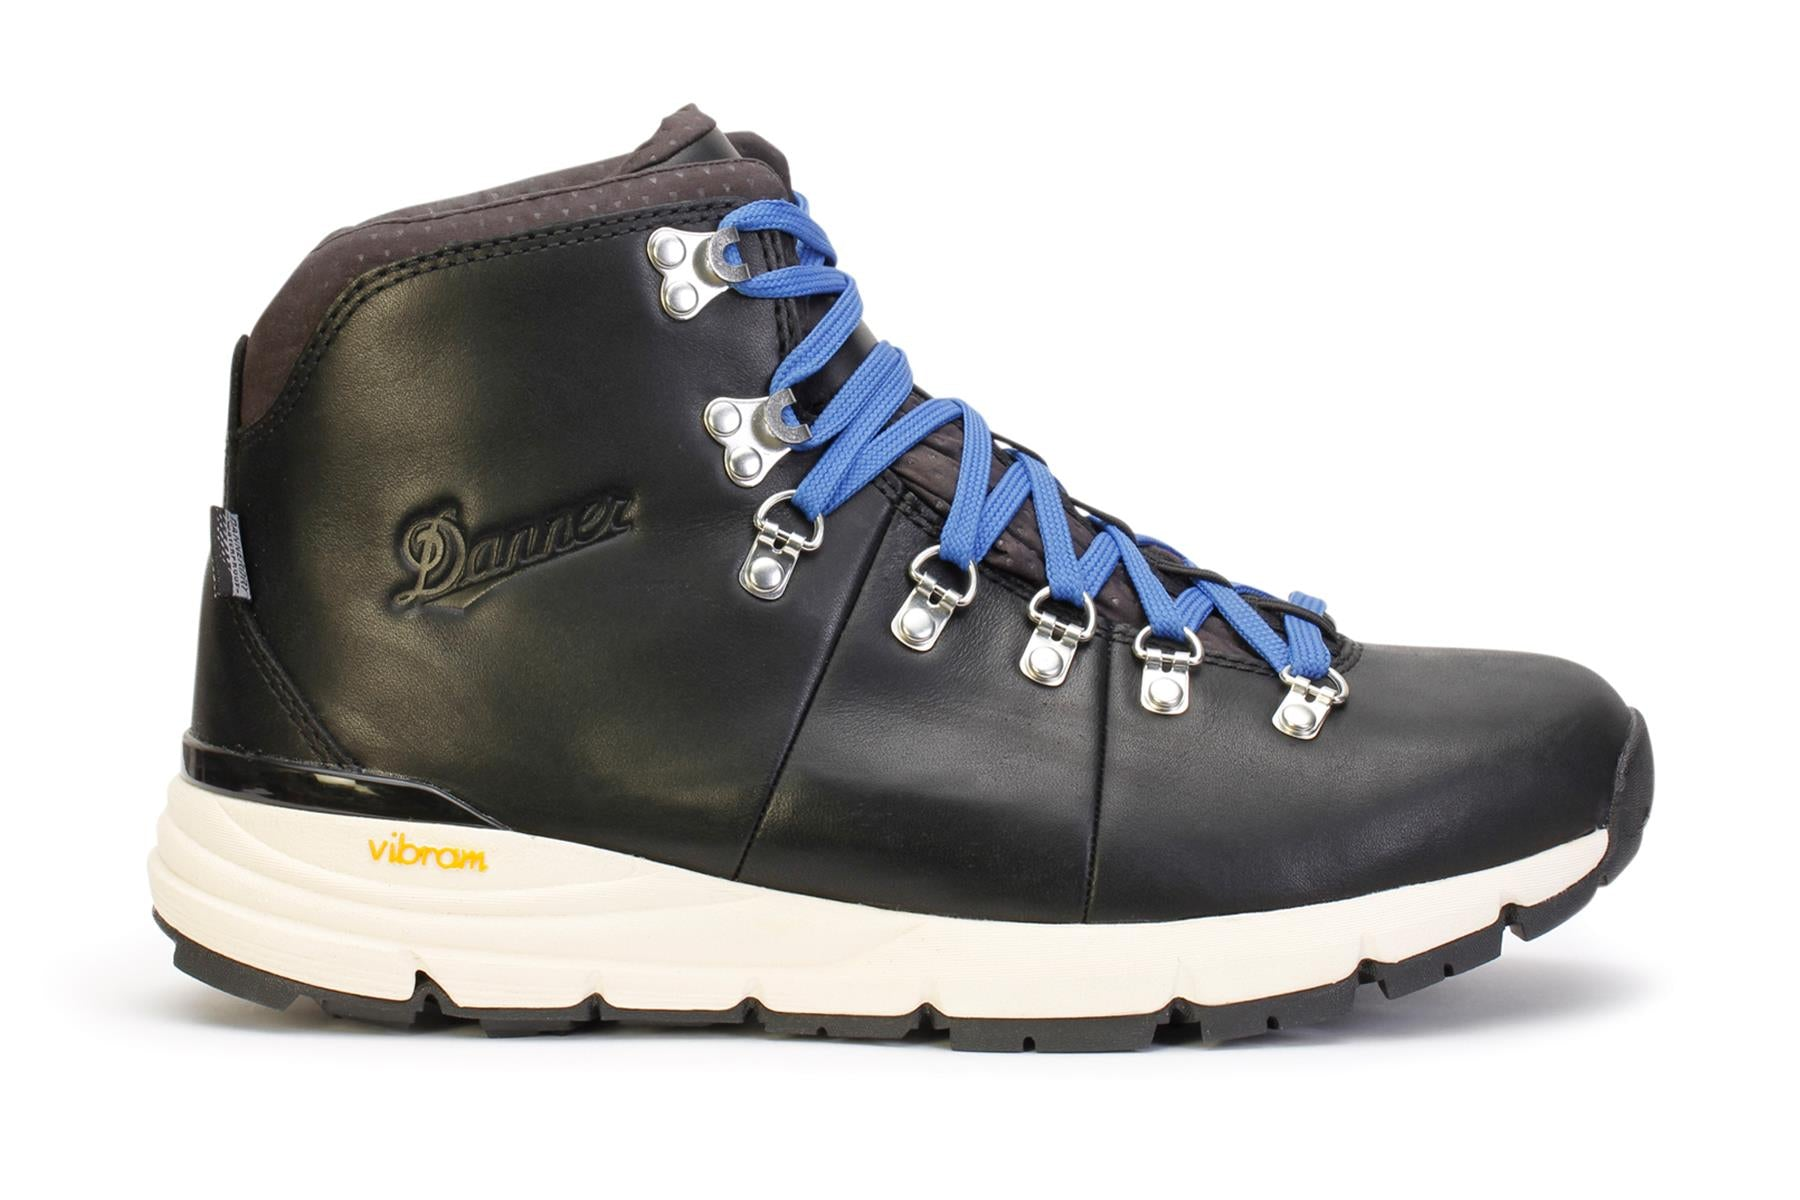 Mountain 600 Hiking Danner Work Boots